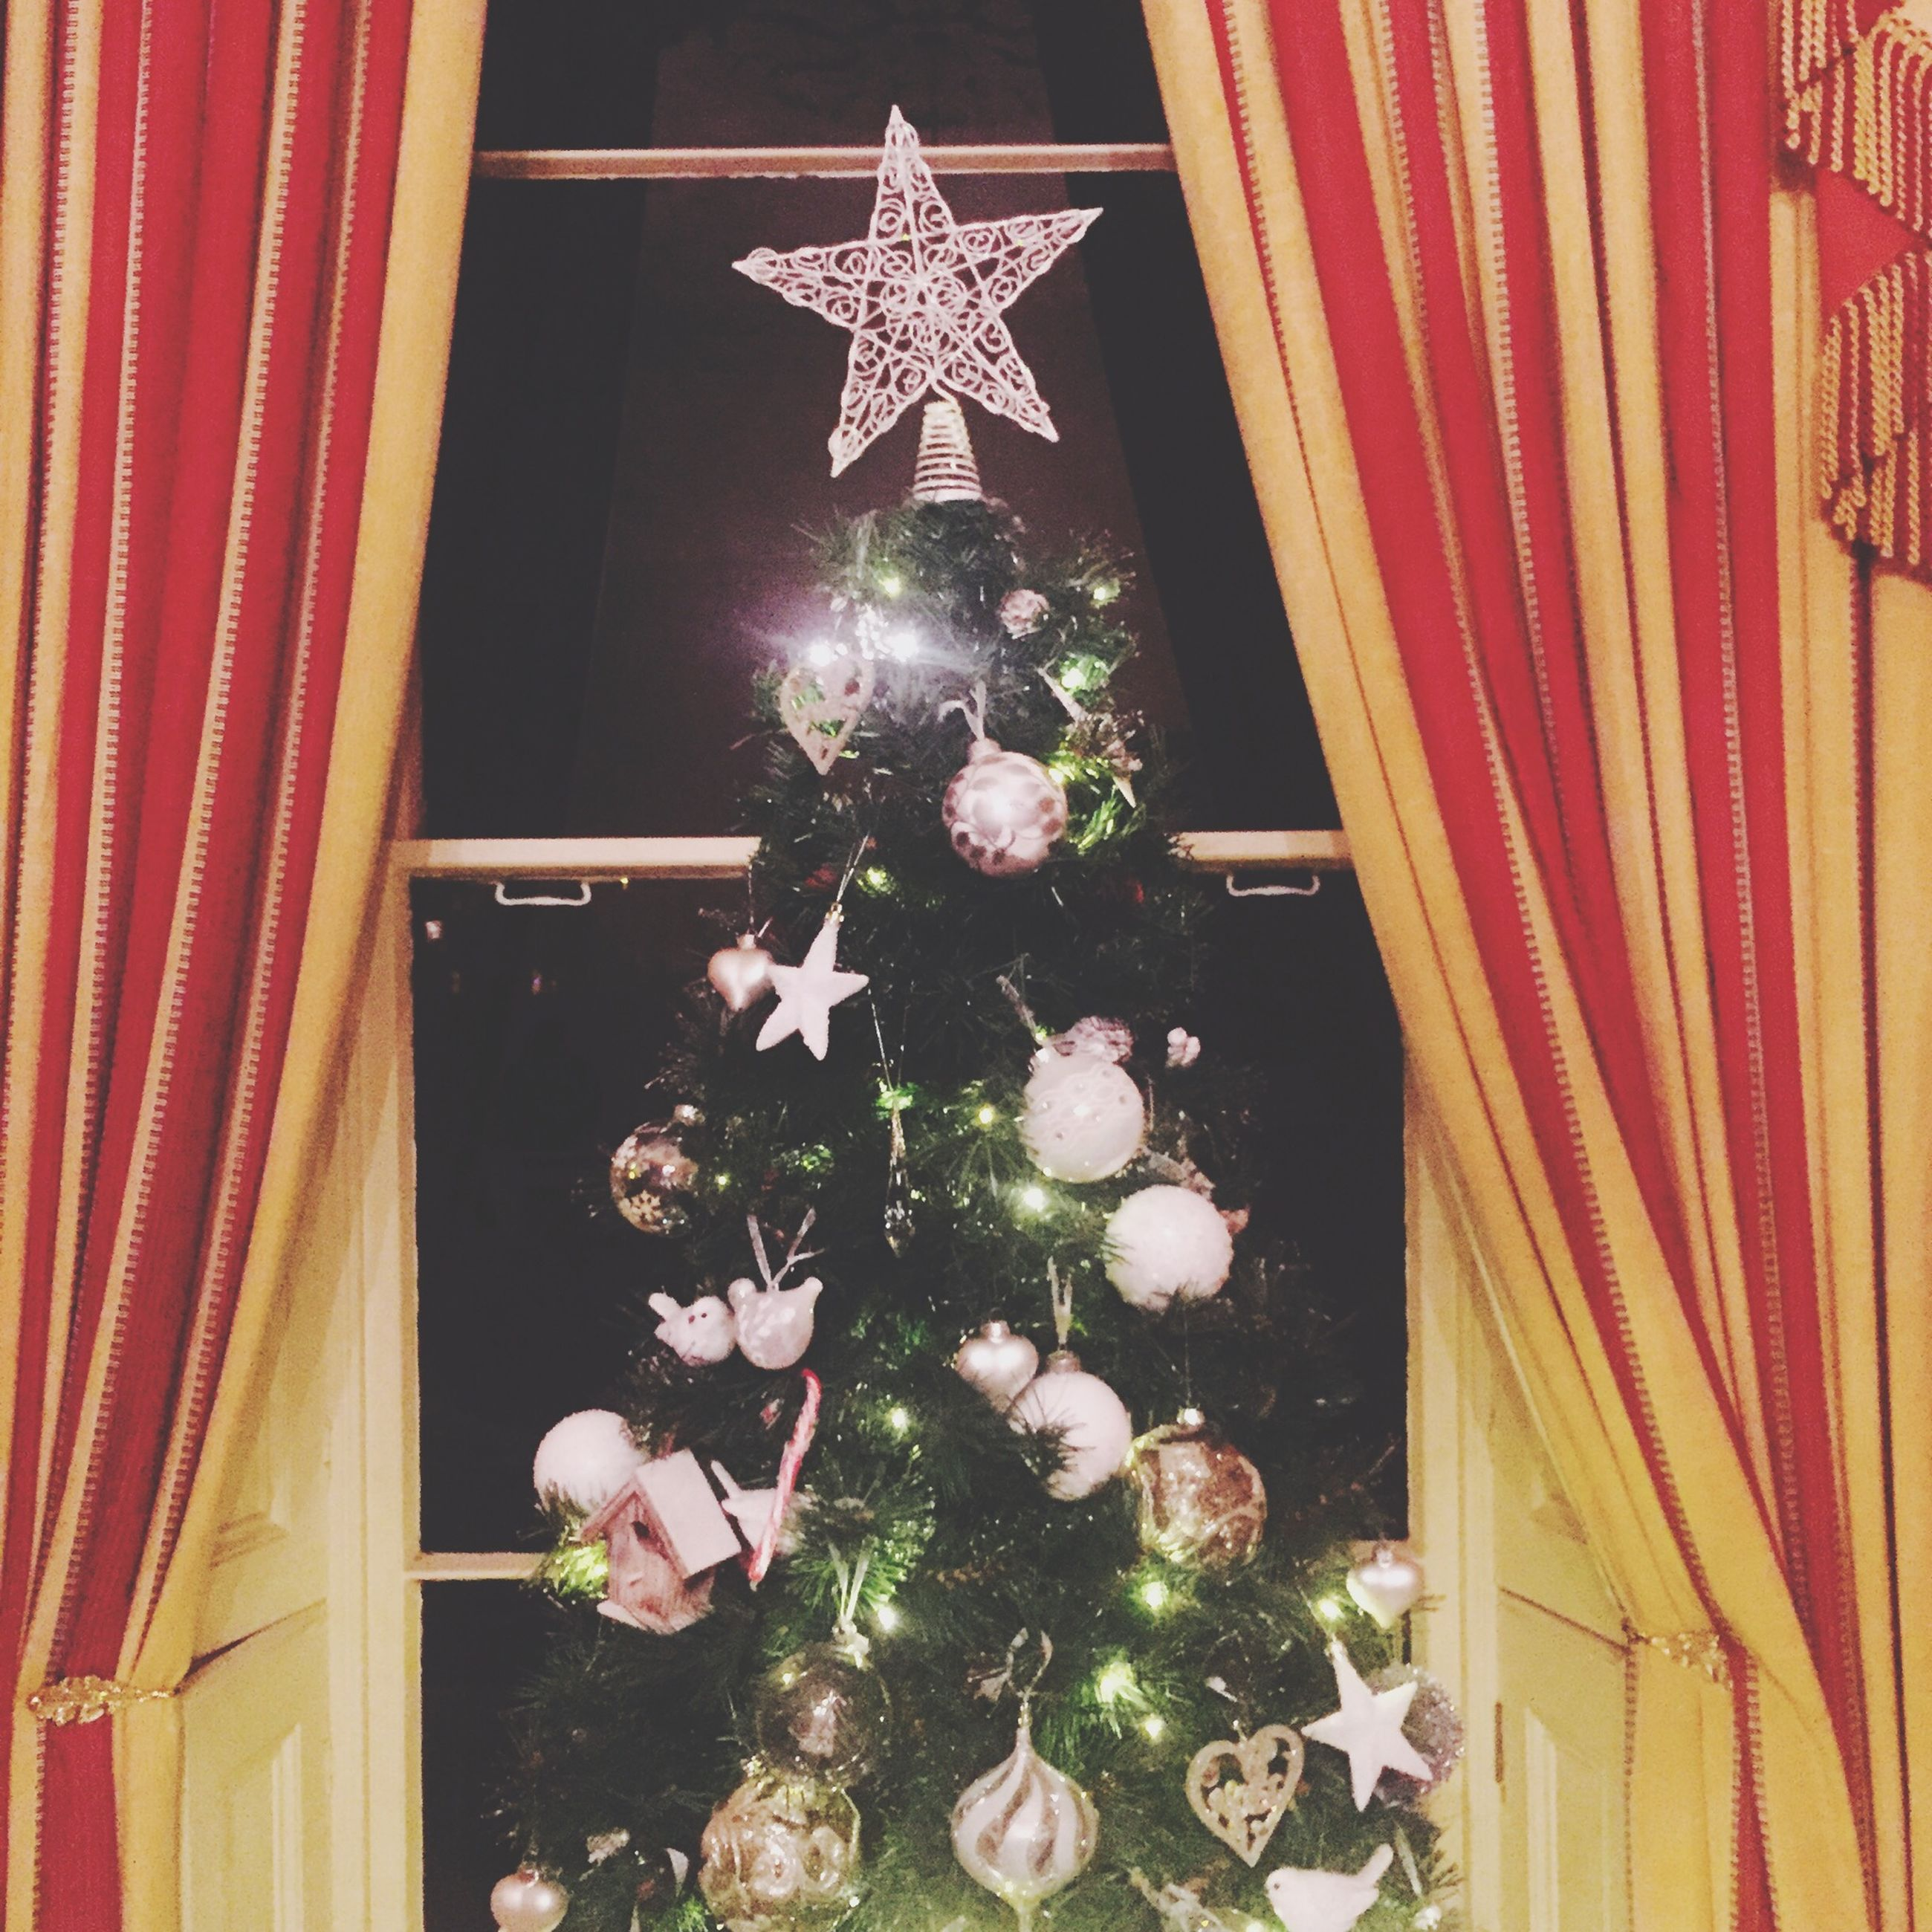 flower, decoration, indoors, hanging, celebration, illuminated, religion, built structure, architecture, christmas, night, decor, house, home interior, building exterior, lighting equipment, low angle view, no people, tradition